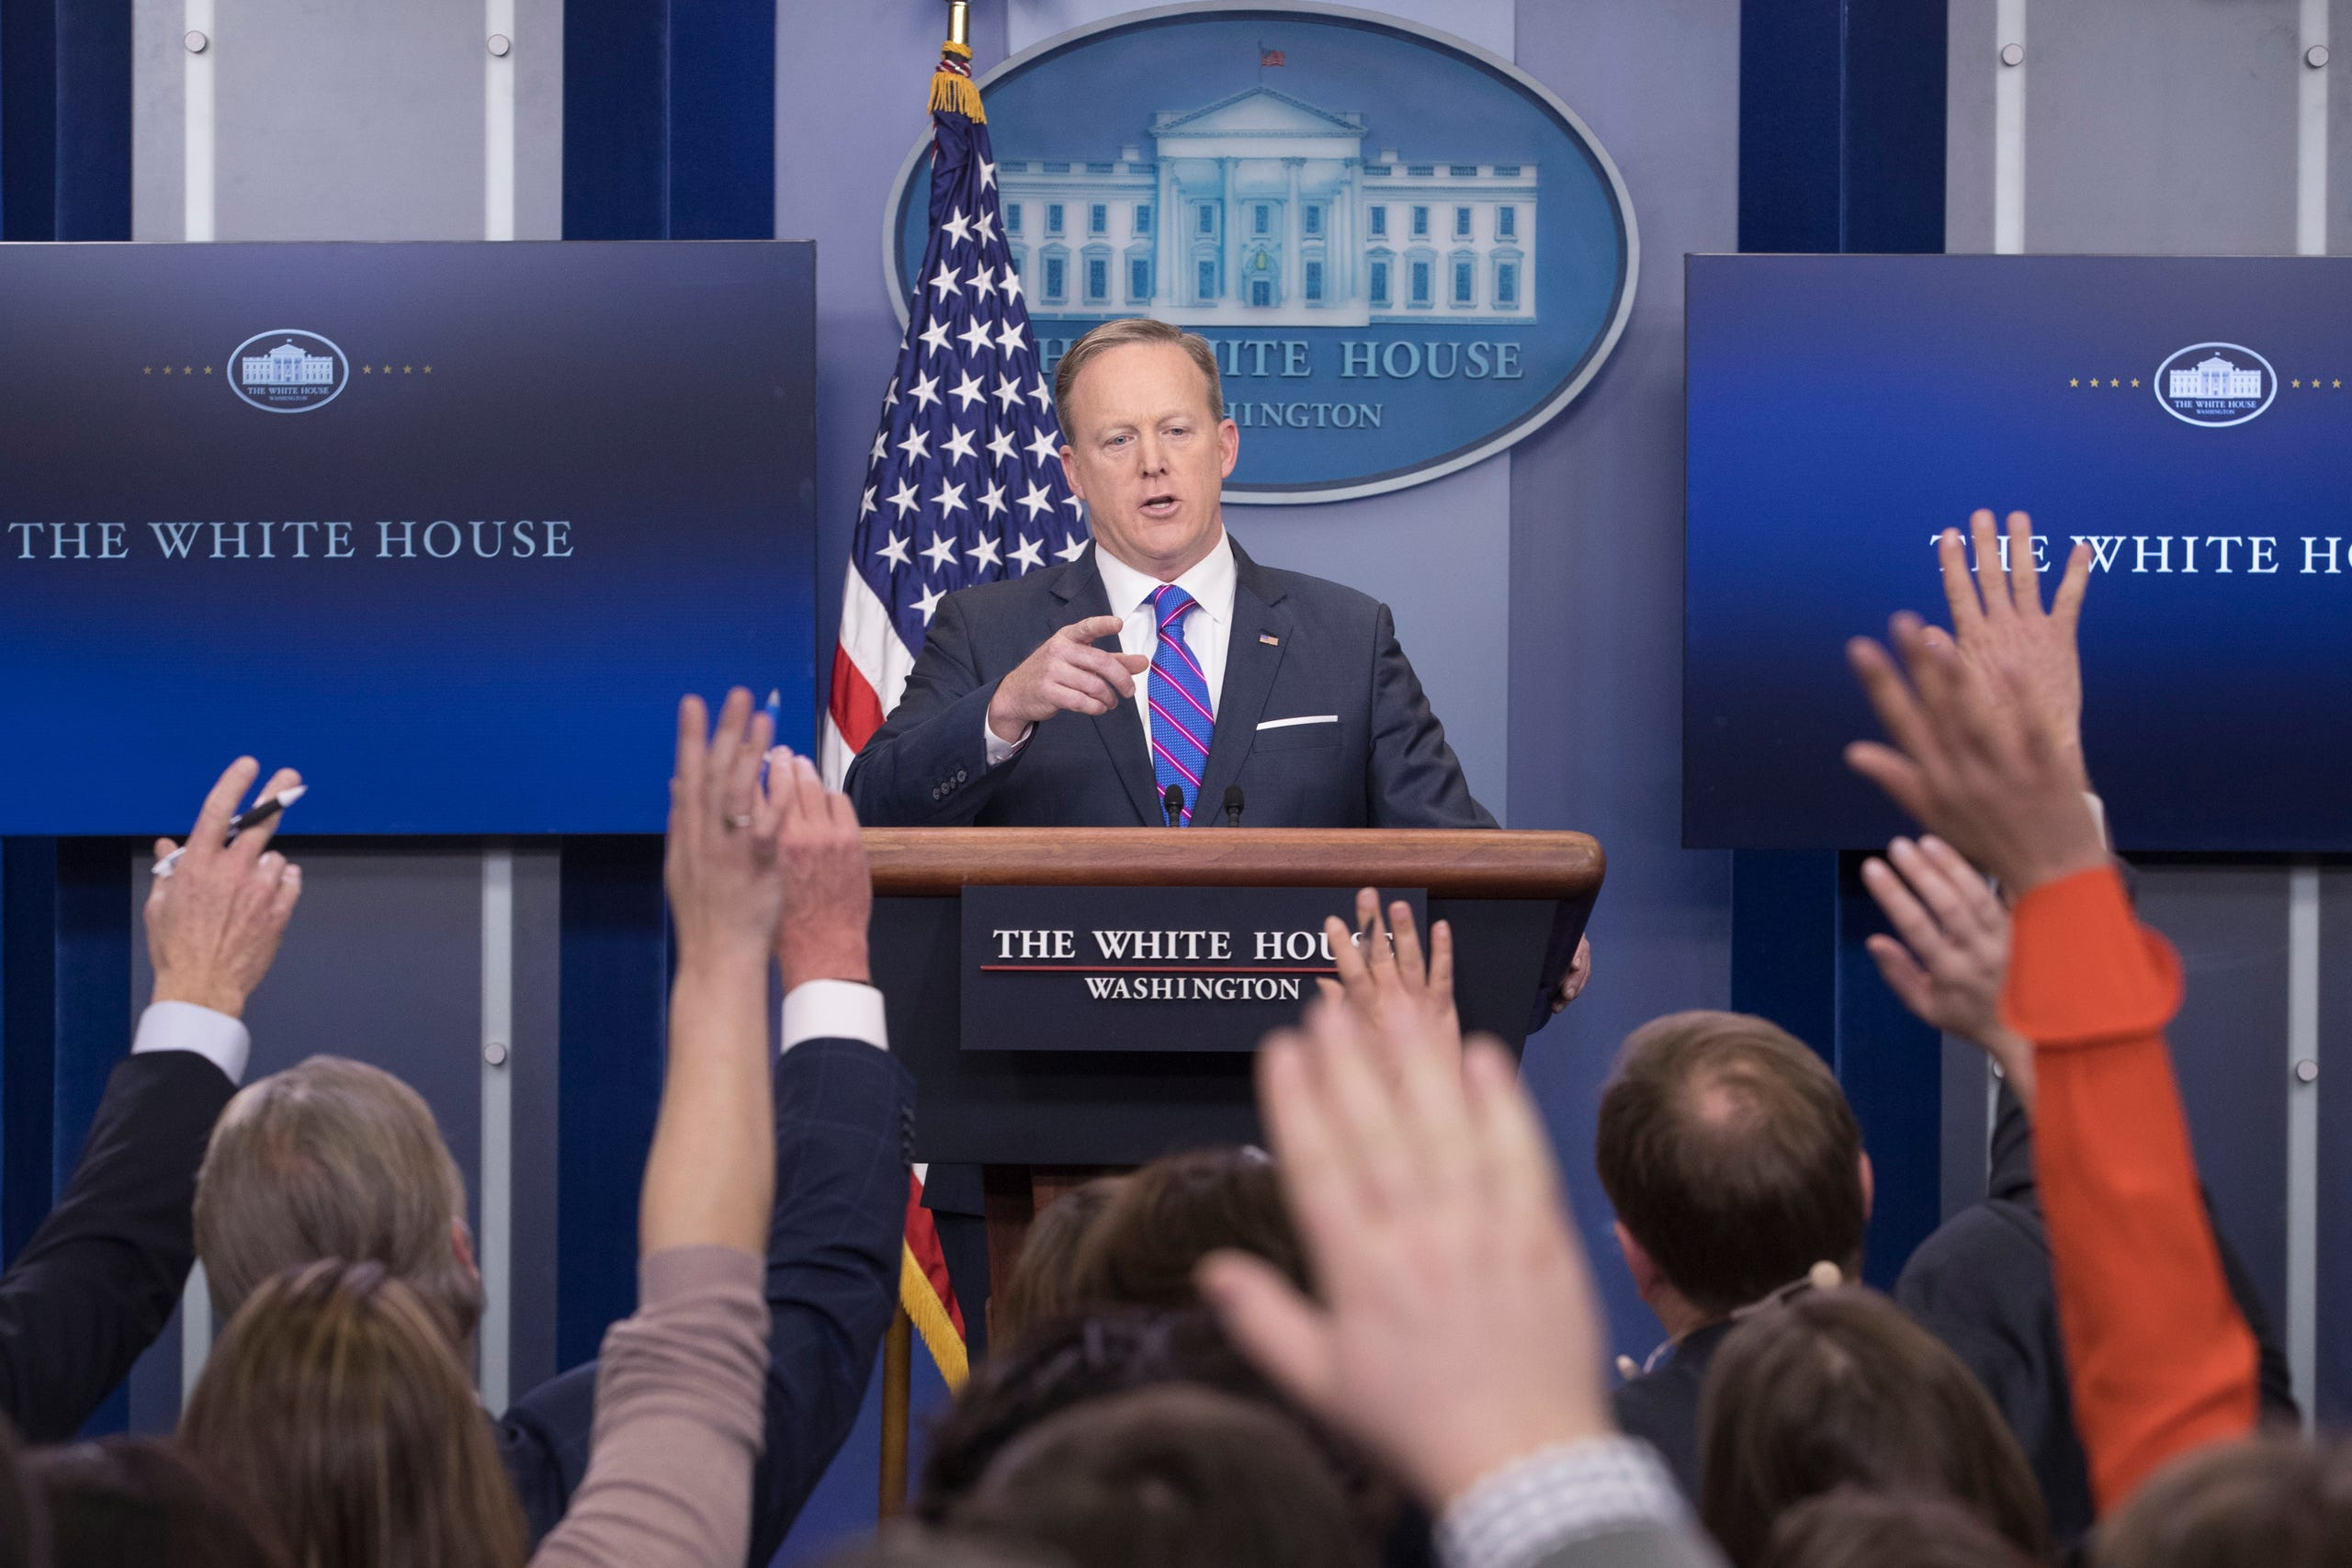 On July 21, Sean Spicer quit his job as White House press secretary after President Donald Trump decided to tap Anthony Scaramucci as the White House communications director, according to two White House officials. Seen here, Spicer takes a question during the daily news conference at the White House on Feb. 14, 2017.